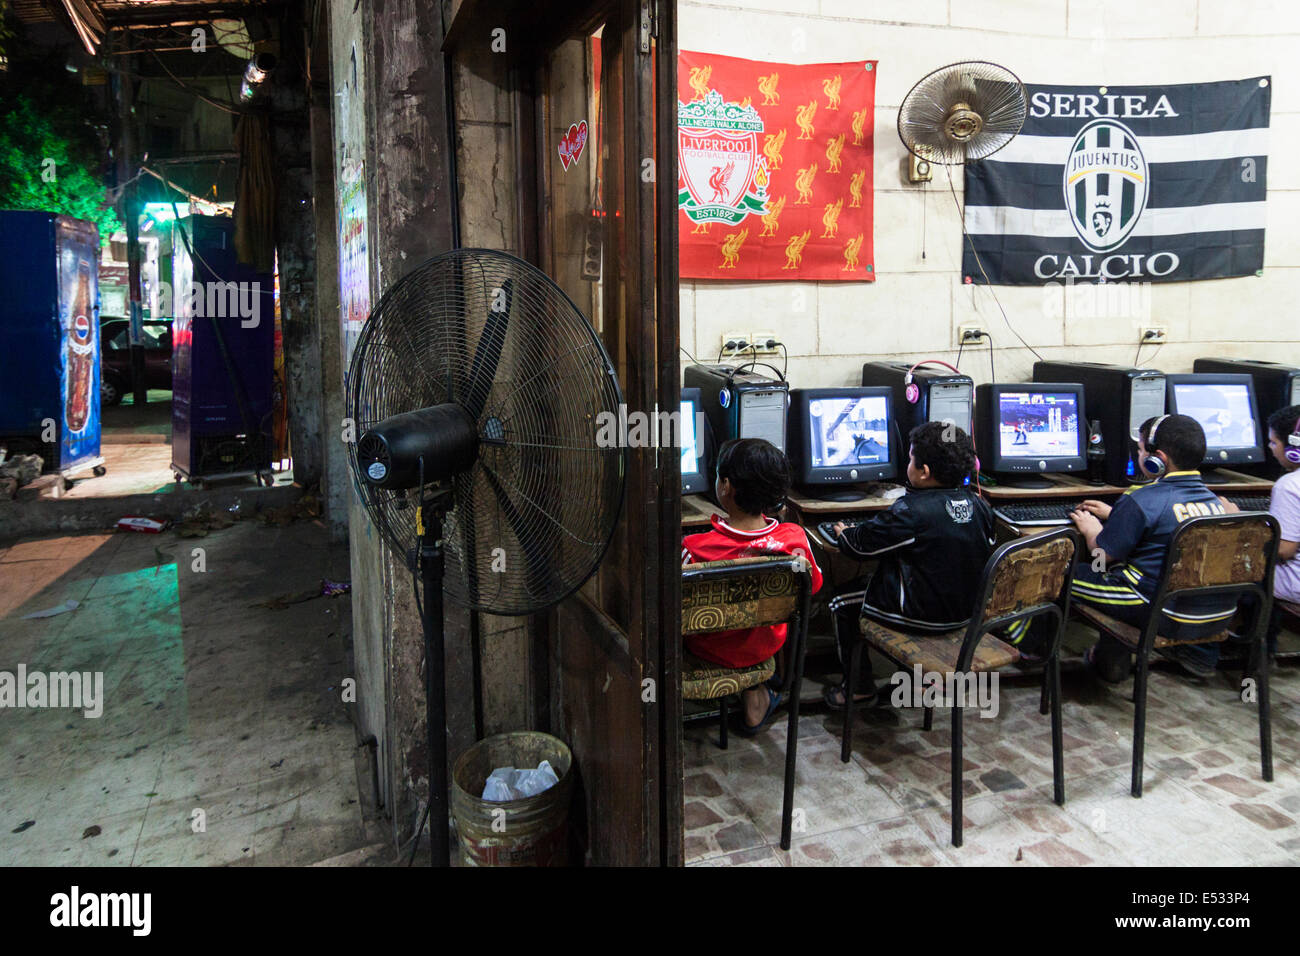 Children playing video games at a web cafe in Old Cairo, Egypt - Stock Image